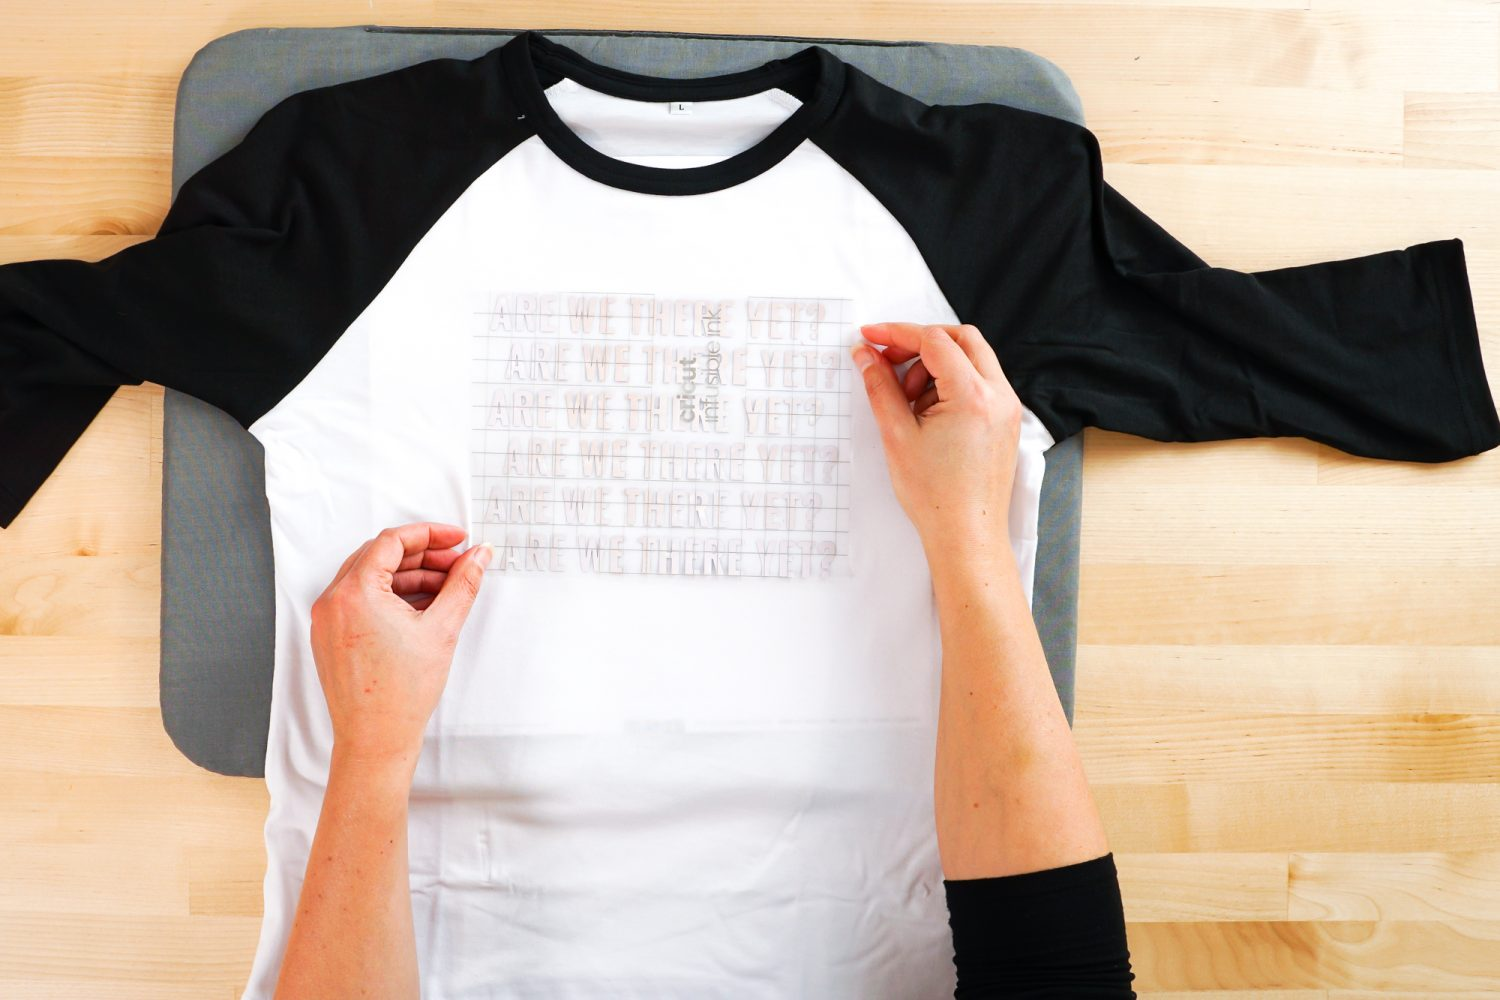 Hands placing the Infusible Ink decal on the raglan.